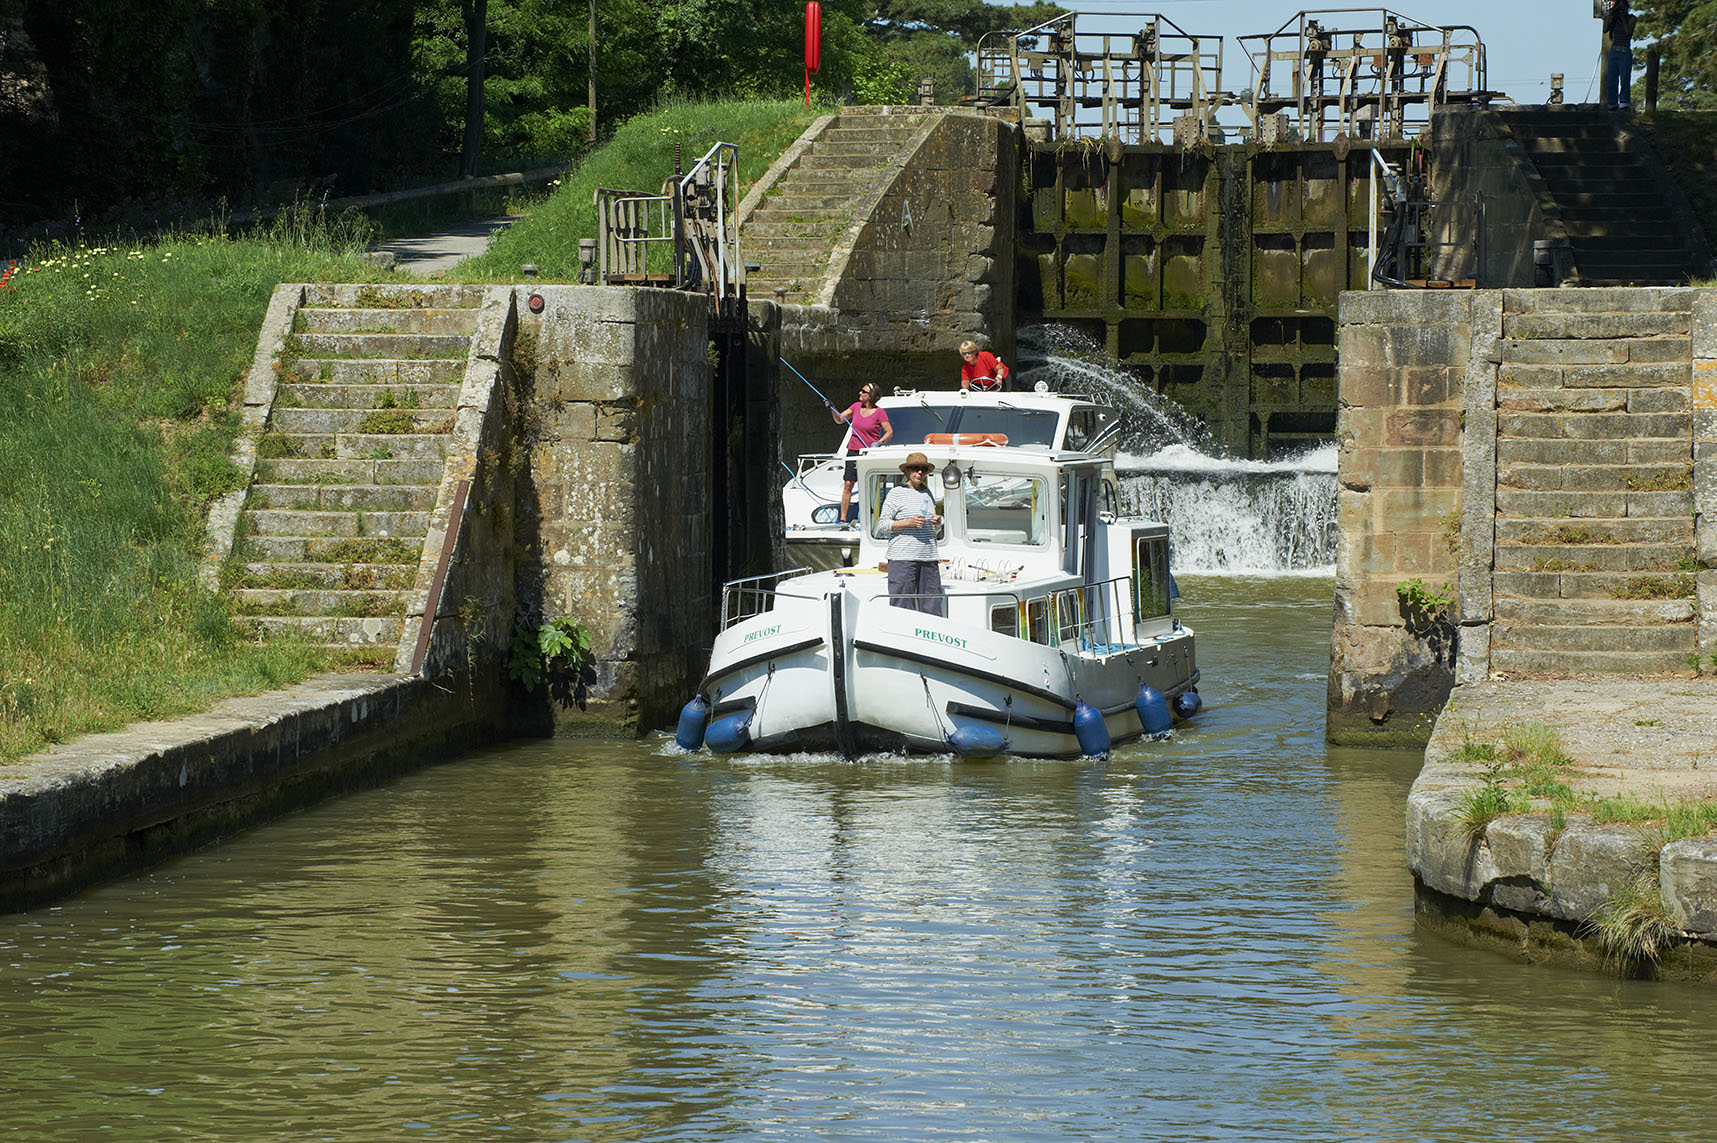 France, Languedoc-Roussillon, Aude (11), Canal du Midi, lock of Pechlaurier